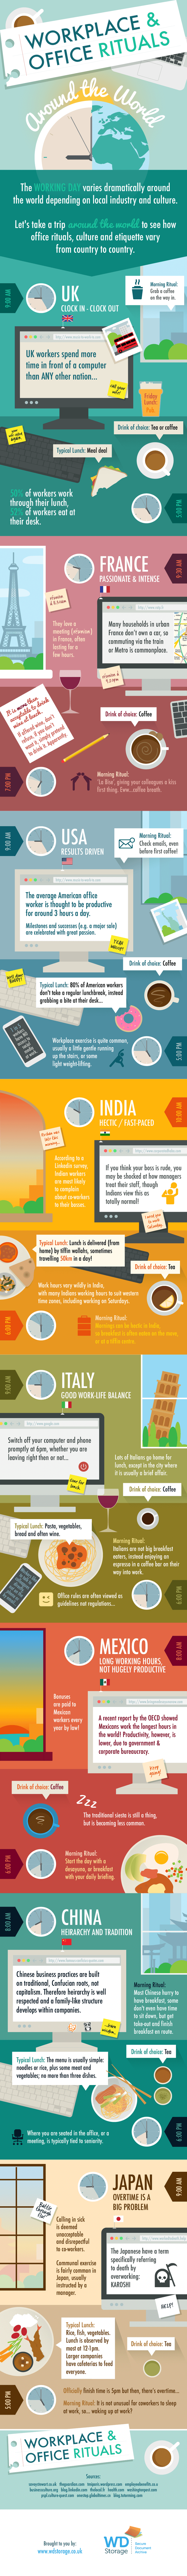 Office Behaviour and Etiquette Around the World